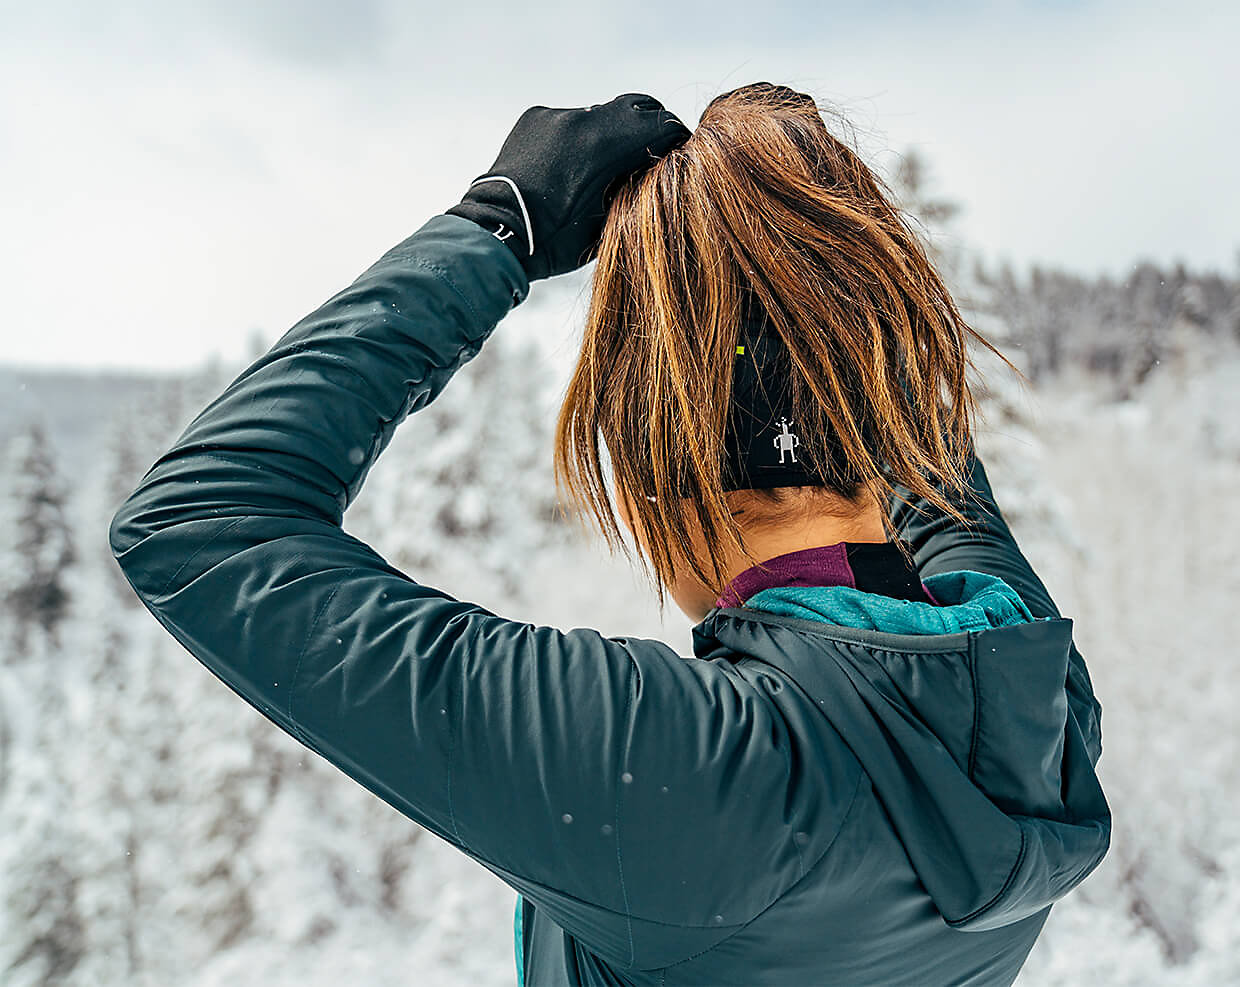 Shot from behind of woman fixing her hair